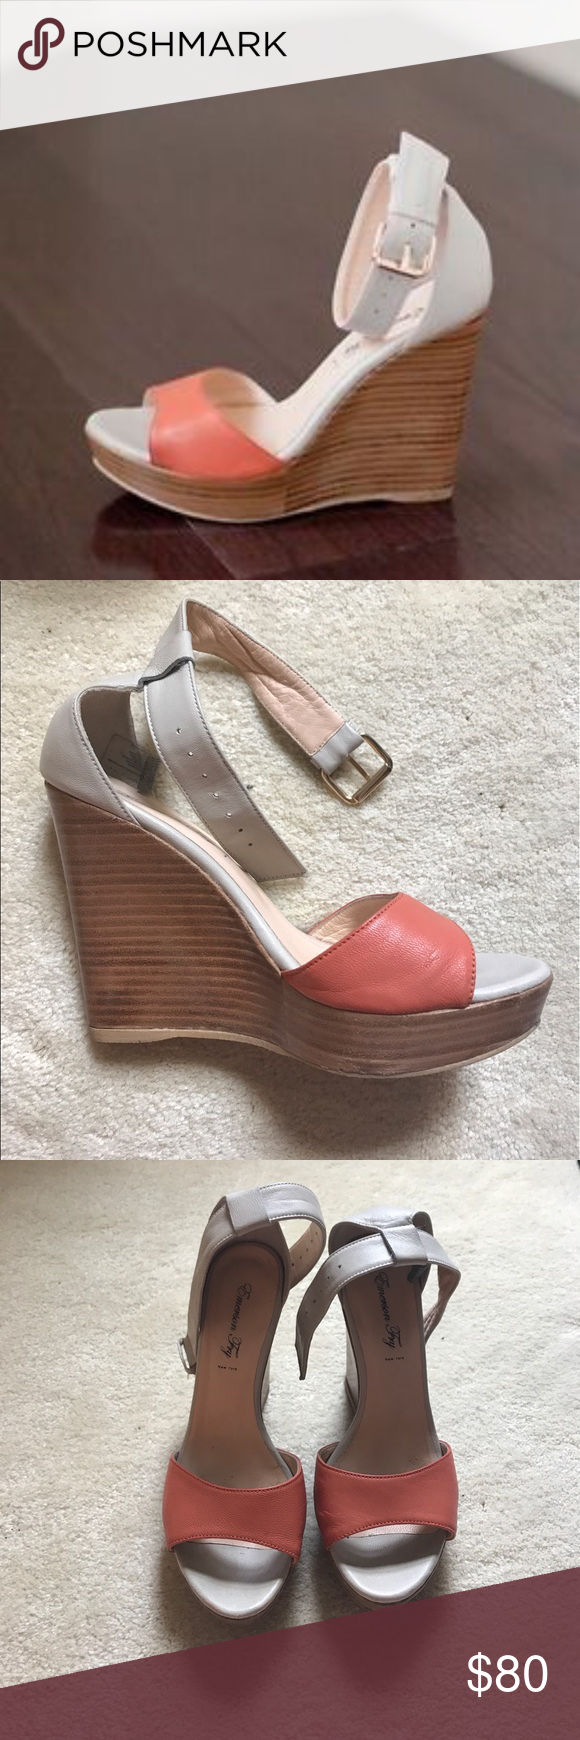 Emerson Fry Shoes | Emerson Fry Leather Wedge Sandals | Color: Cream/Pink | Size: 7 #emersonfry Emerson Fry Leather Wedge Sandals Lightly worn Emerson Fry platform wedge sandals in cream and coral leather. Wood heel and rubber soles. Emerson Fry Shoes Wedges #emersonfry Emerson Fry Shoes | Emerson Fry Leather Wedge Sandals | Color: Cream/Pink | Size: 7 #emersonfry Emerson Fry Leather Wedge Sandals Lightly worn Emerson Fry platform wedge sandals in cream and coral leather. Wood heel and rubber so #emersonfry